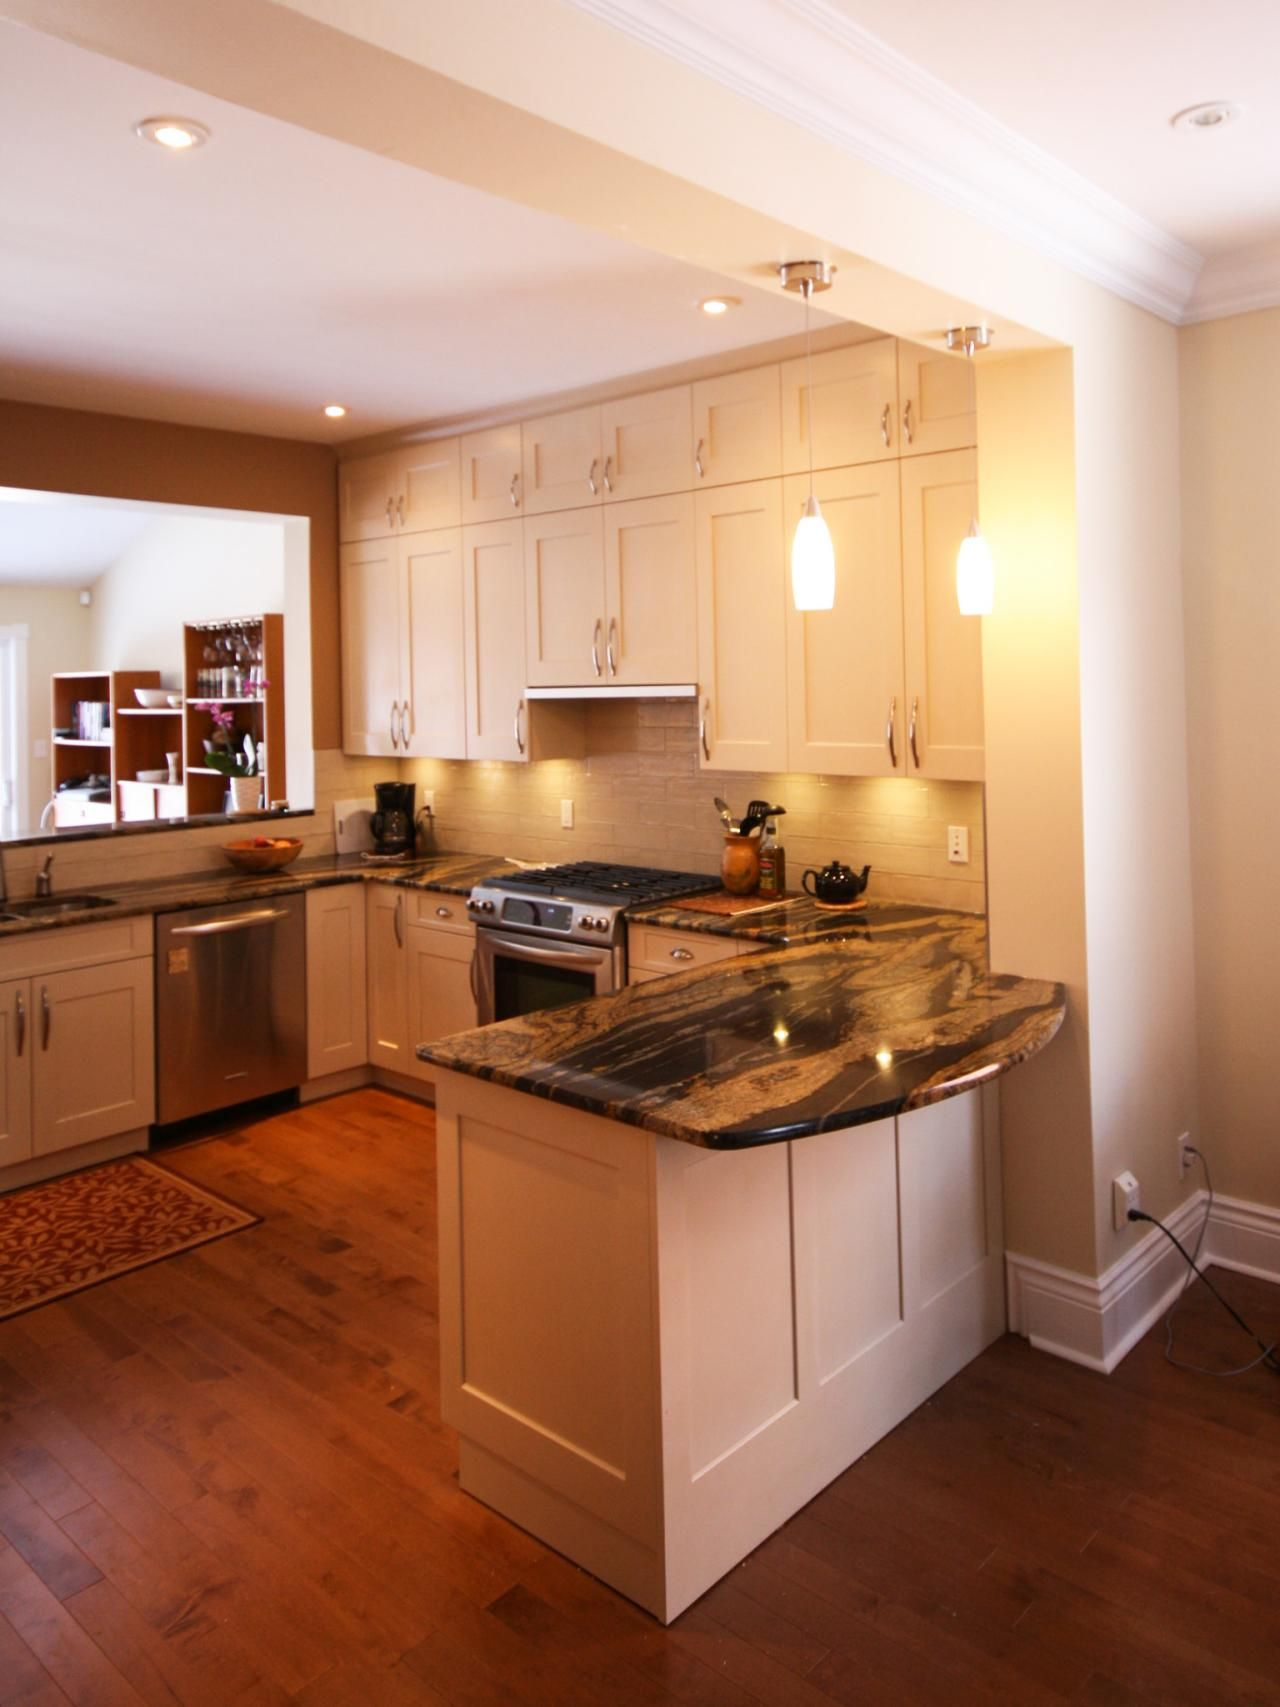 U Shaped Kitchen Design Ideas Pictures Ideas From Hgtv Kitchen Layout Kitchen Design Small Kitchen Remodel Small